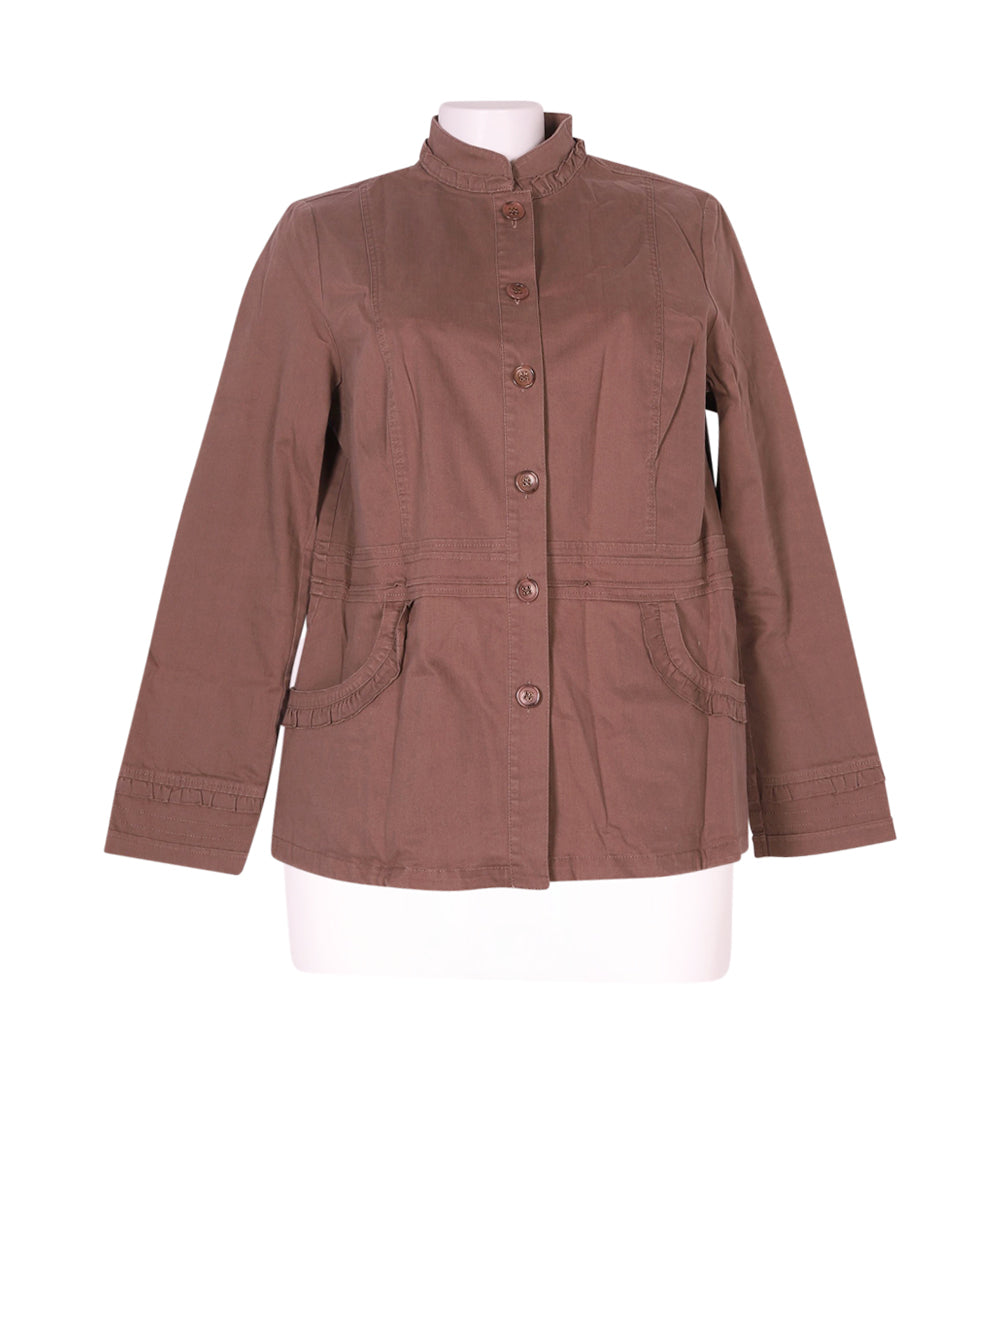 Front photo of Preloved celaia Brown Woman's jacket - size 14/XL